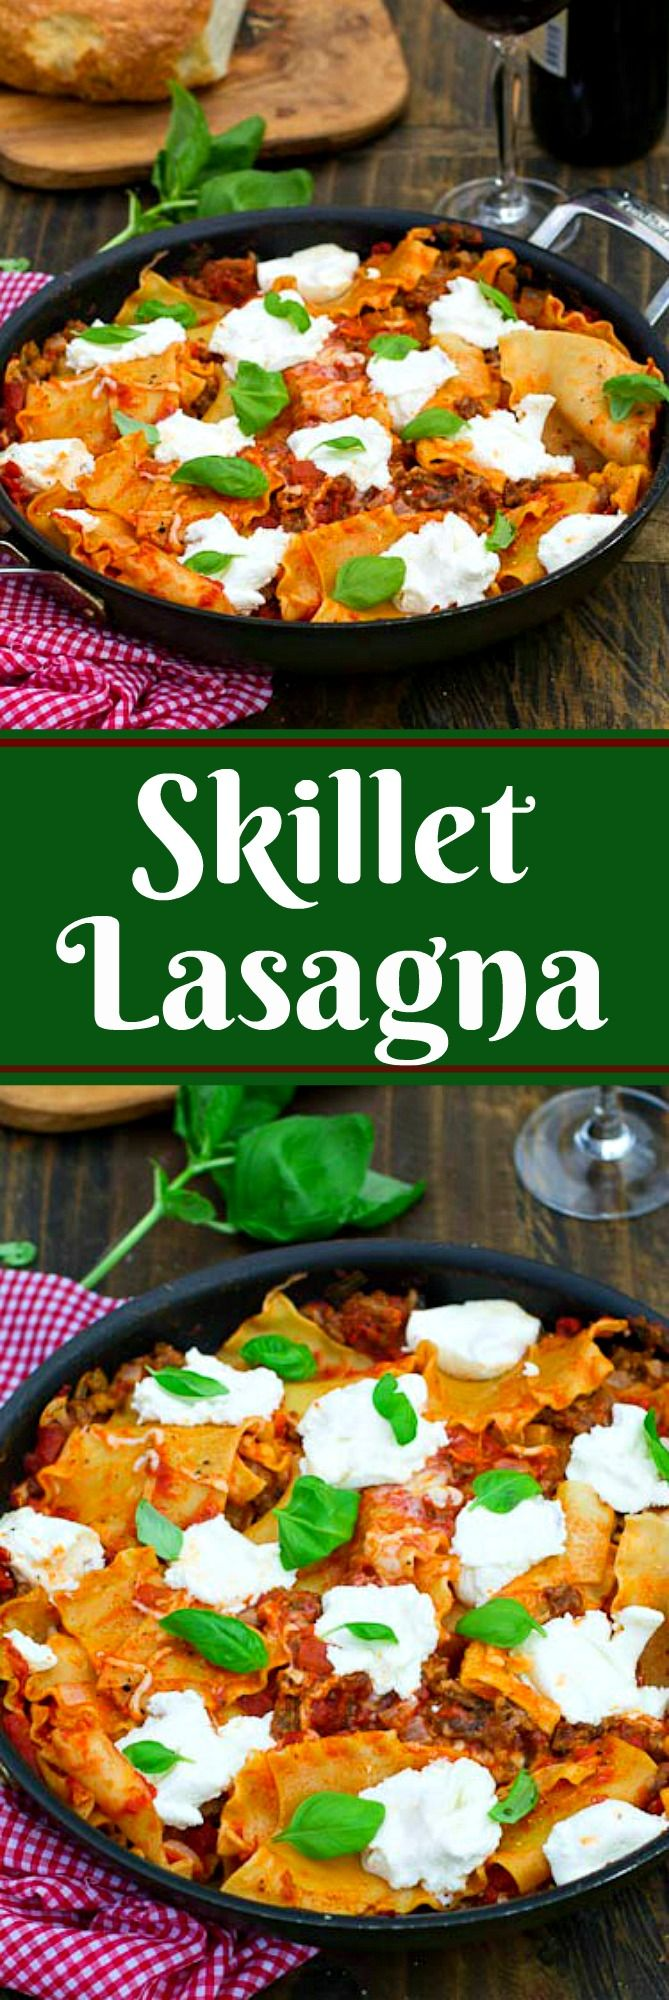 This is an easy but tasty lasagna flavored with sausage and large dollops of ricotta cheese and sprinkled with fresh basil. It's cooked in a skillet and can be made start to finish in less than 45 minutes.